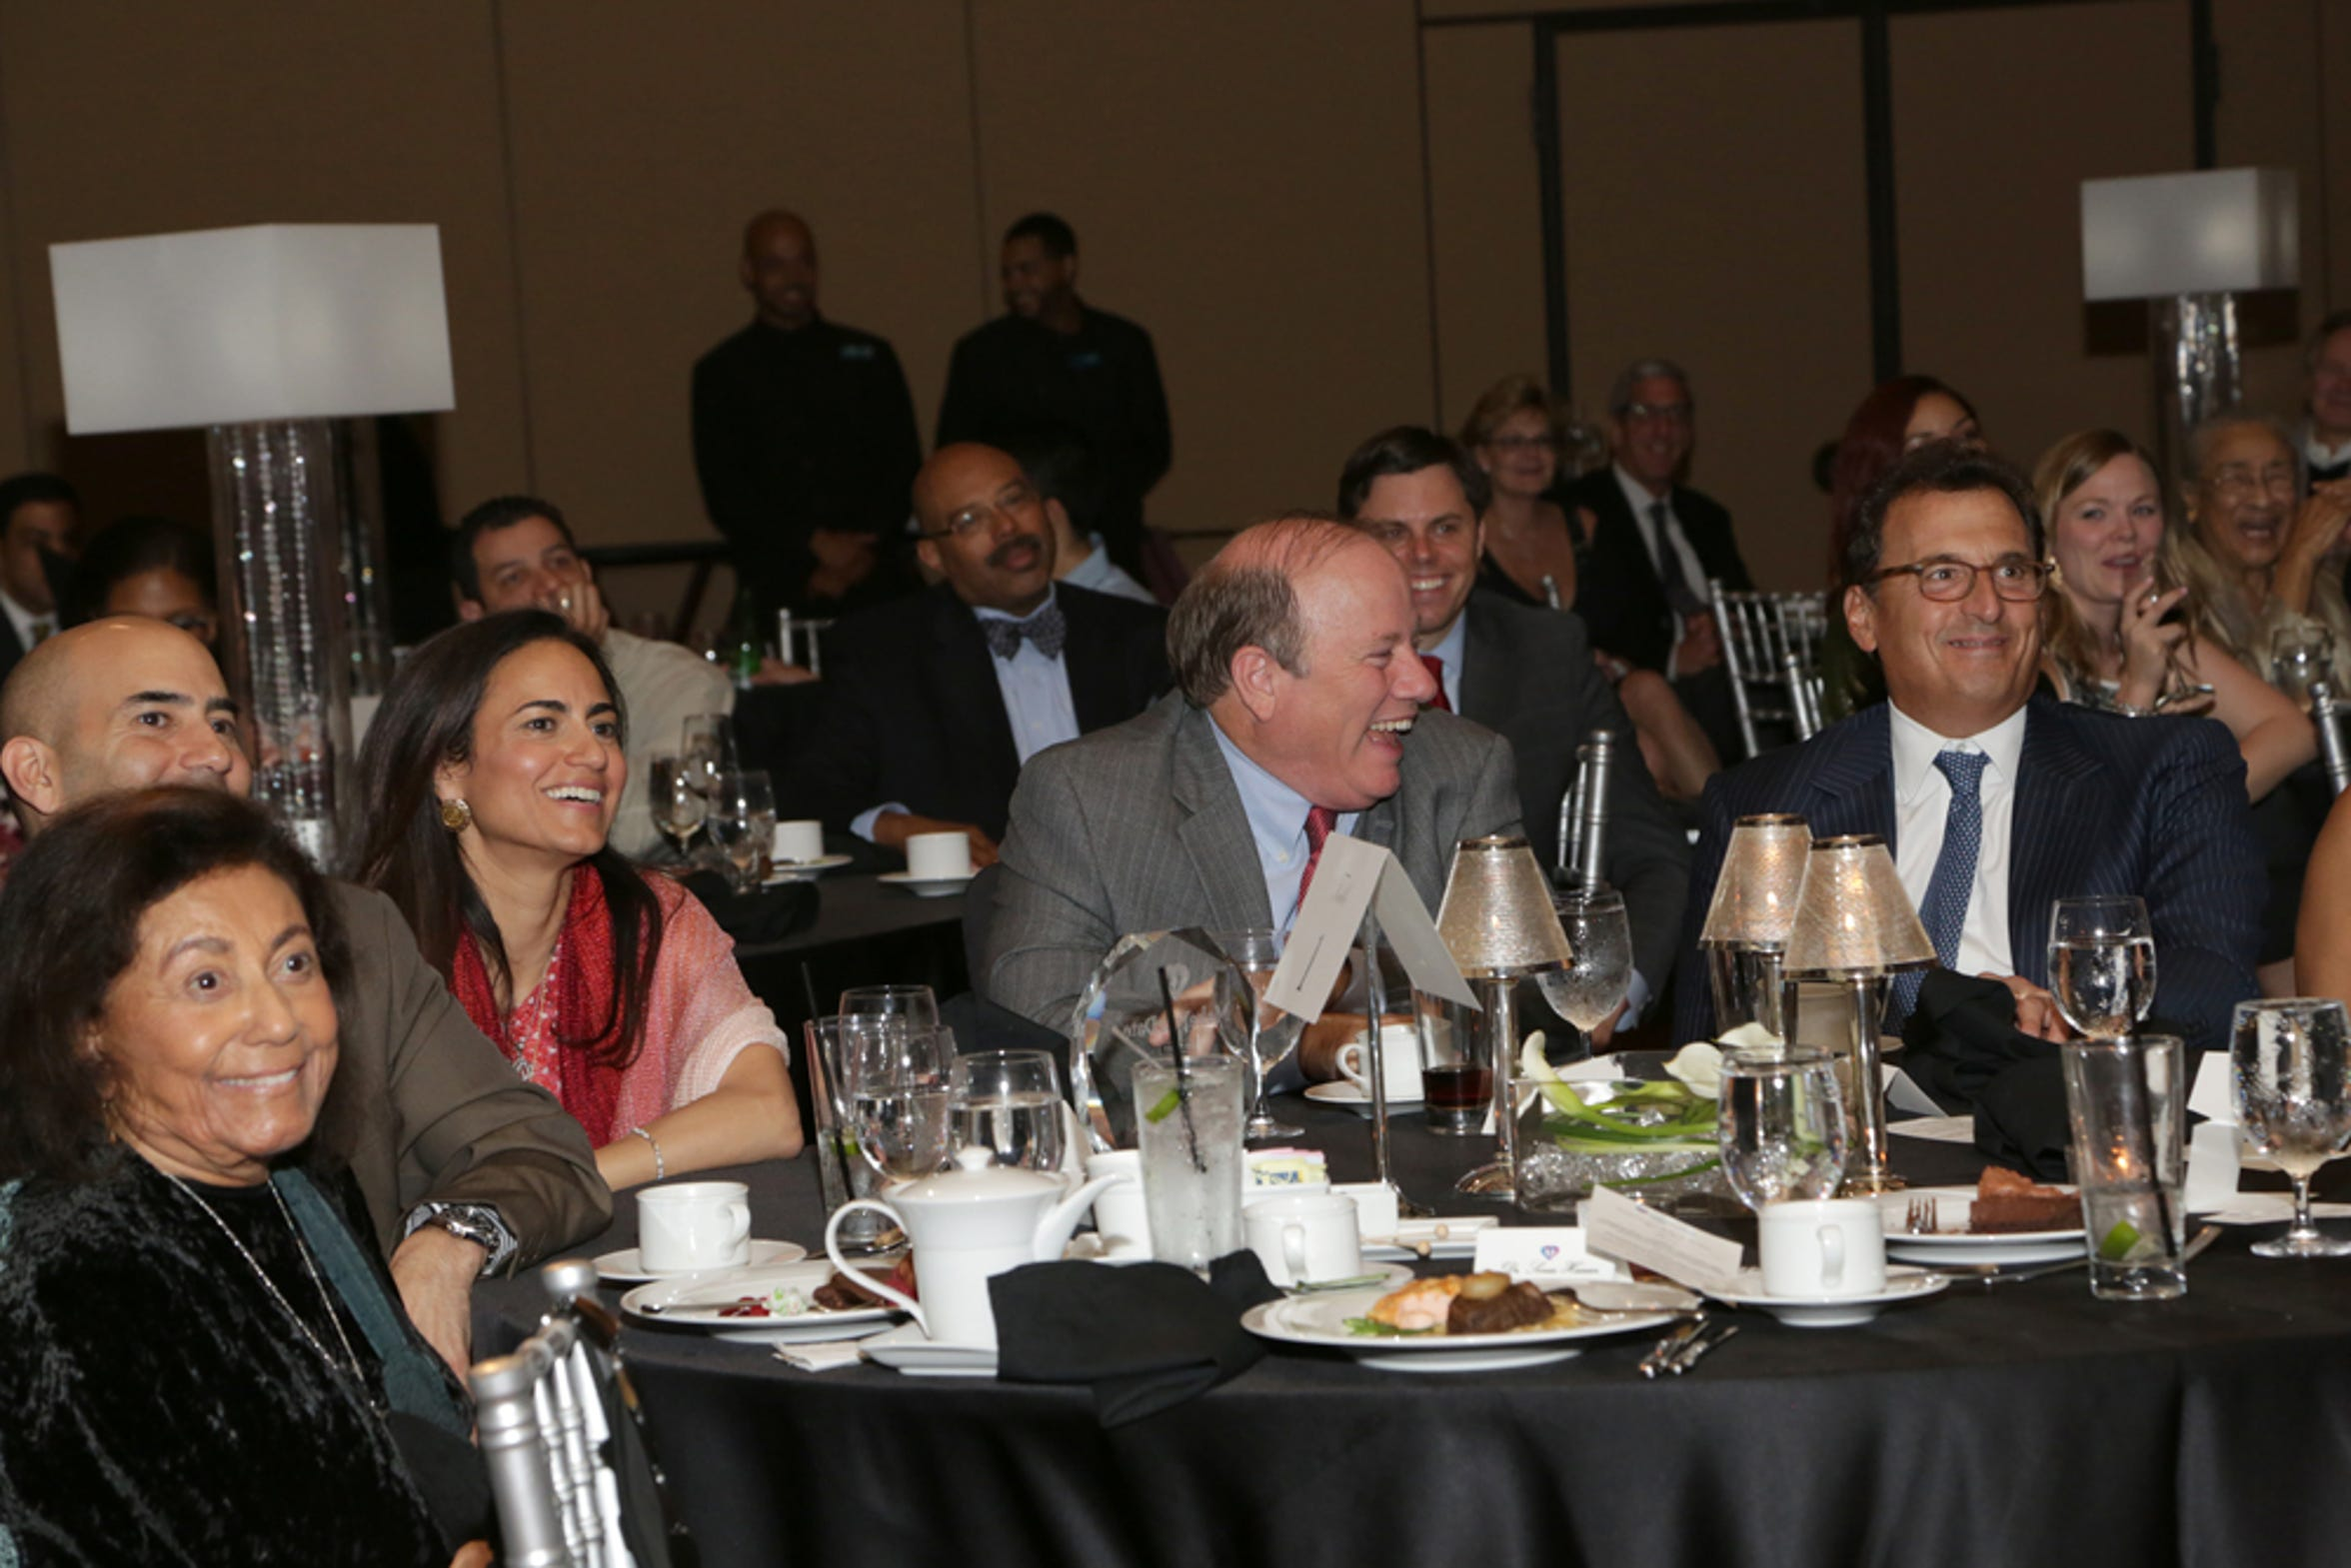 Dr. Sonia Hassan, in red, sits with Detroit Mayor Mike Duggan during the 2015 fundraising gala for Hassan's Make Your Date program at MGM Grand Detroit.